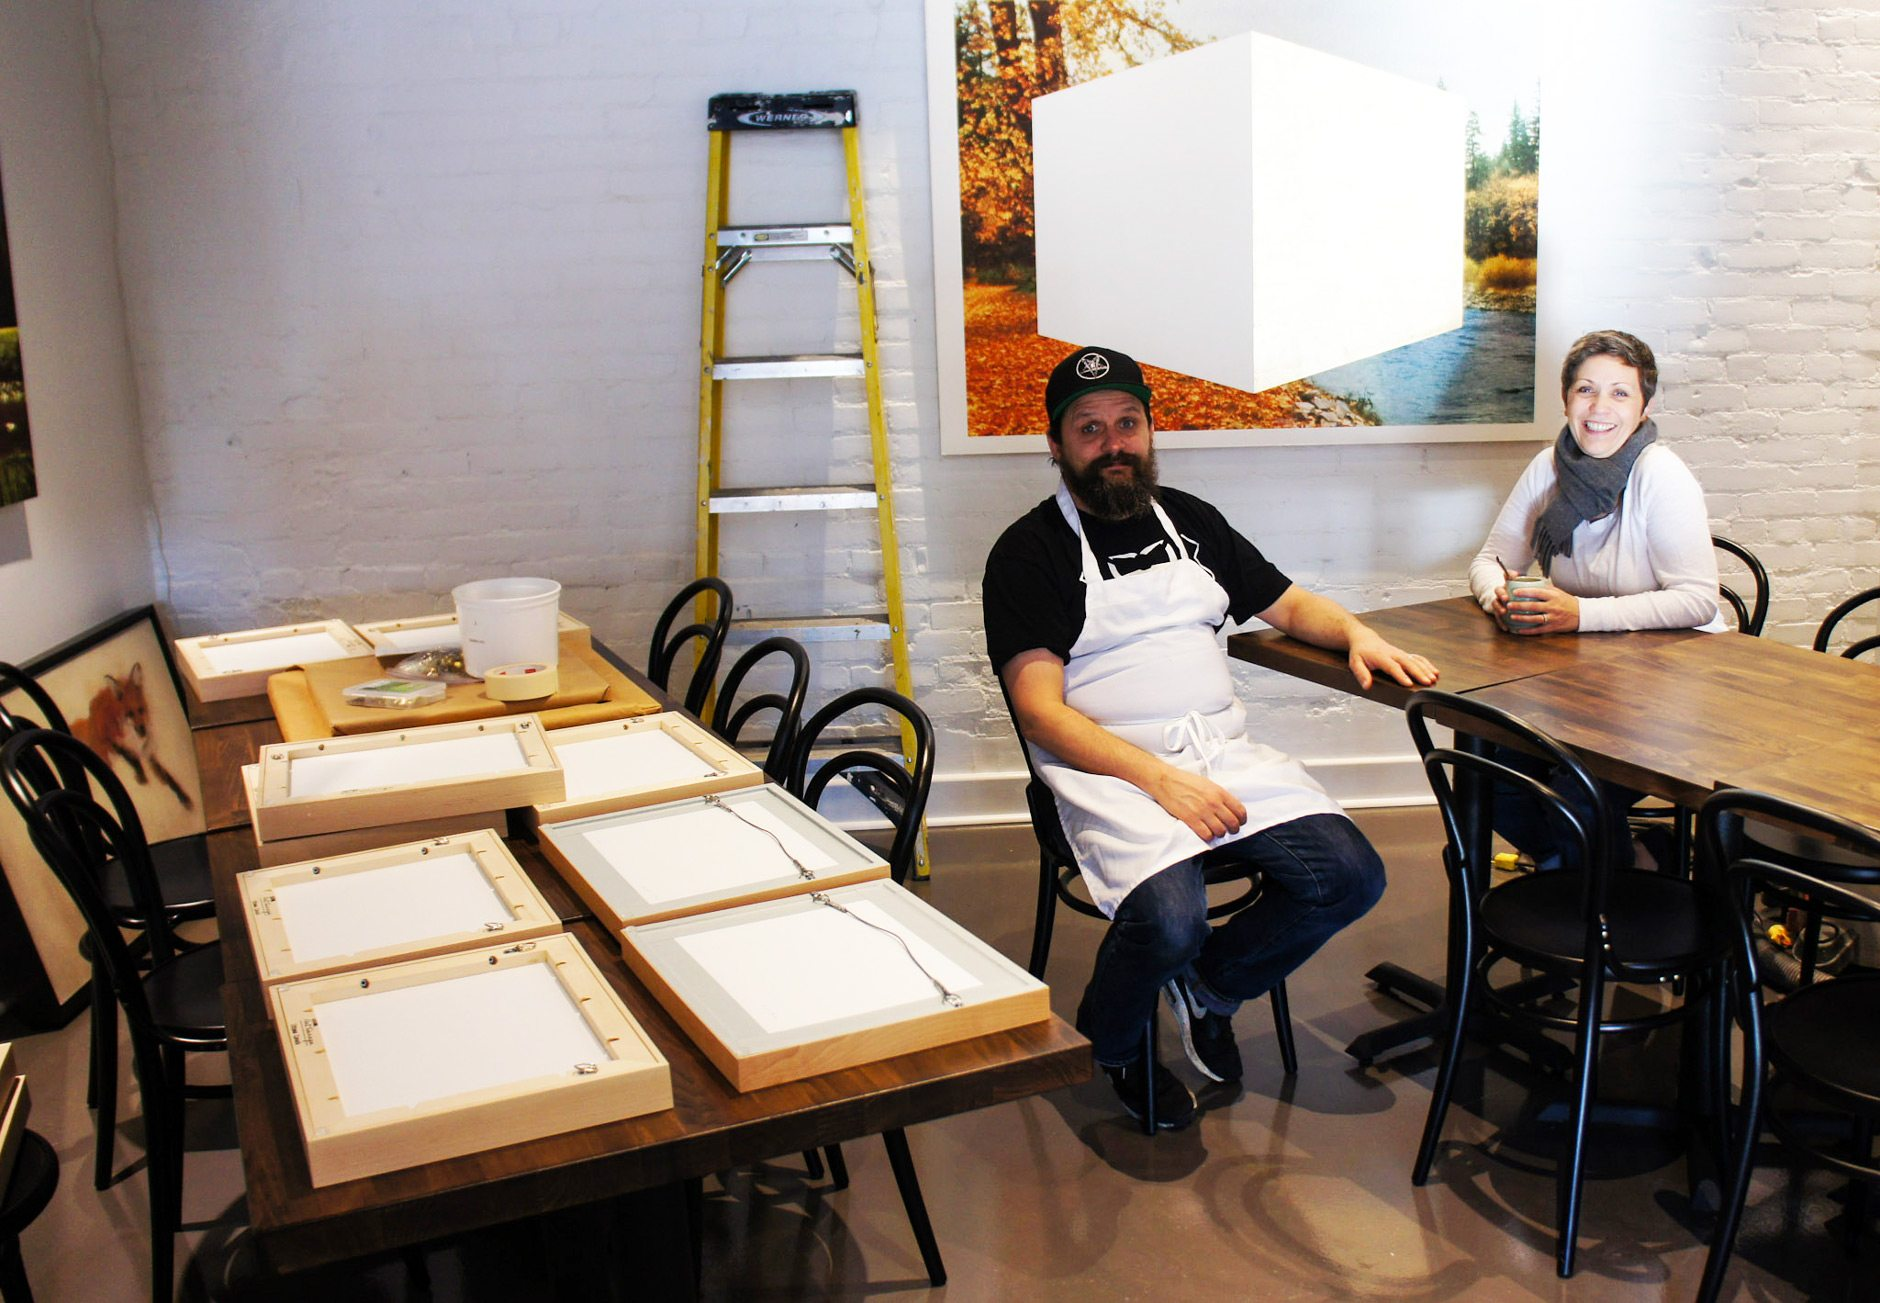 Doiron and Lori Wojcik in the midst of renovating their new restaurant. Photo: Katie Shapiro